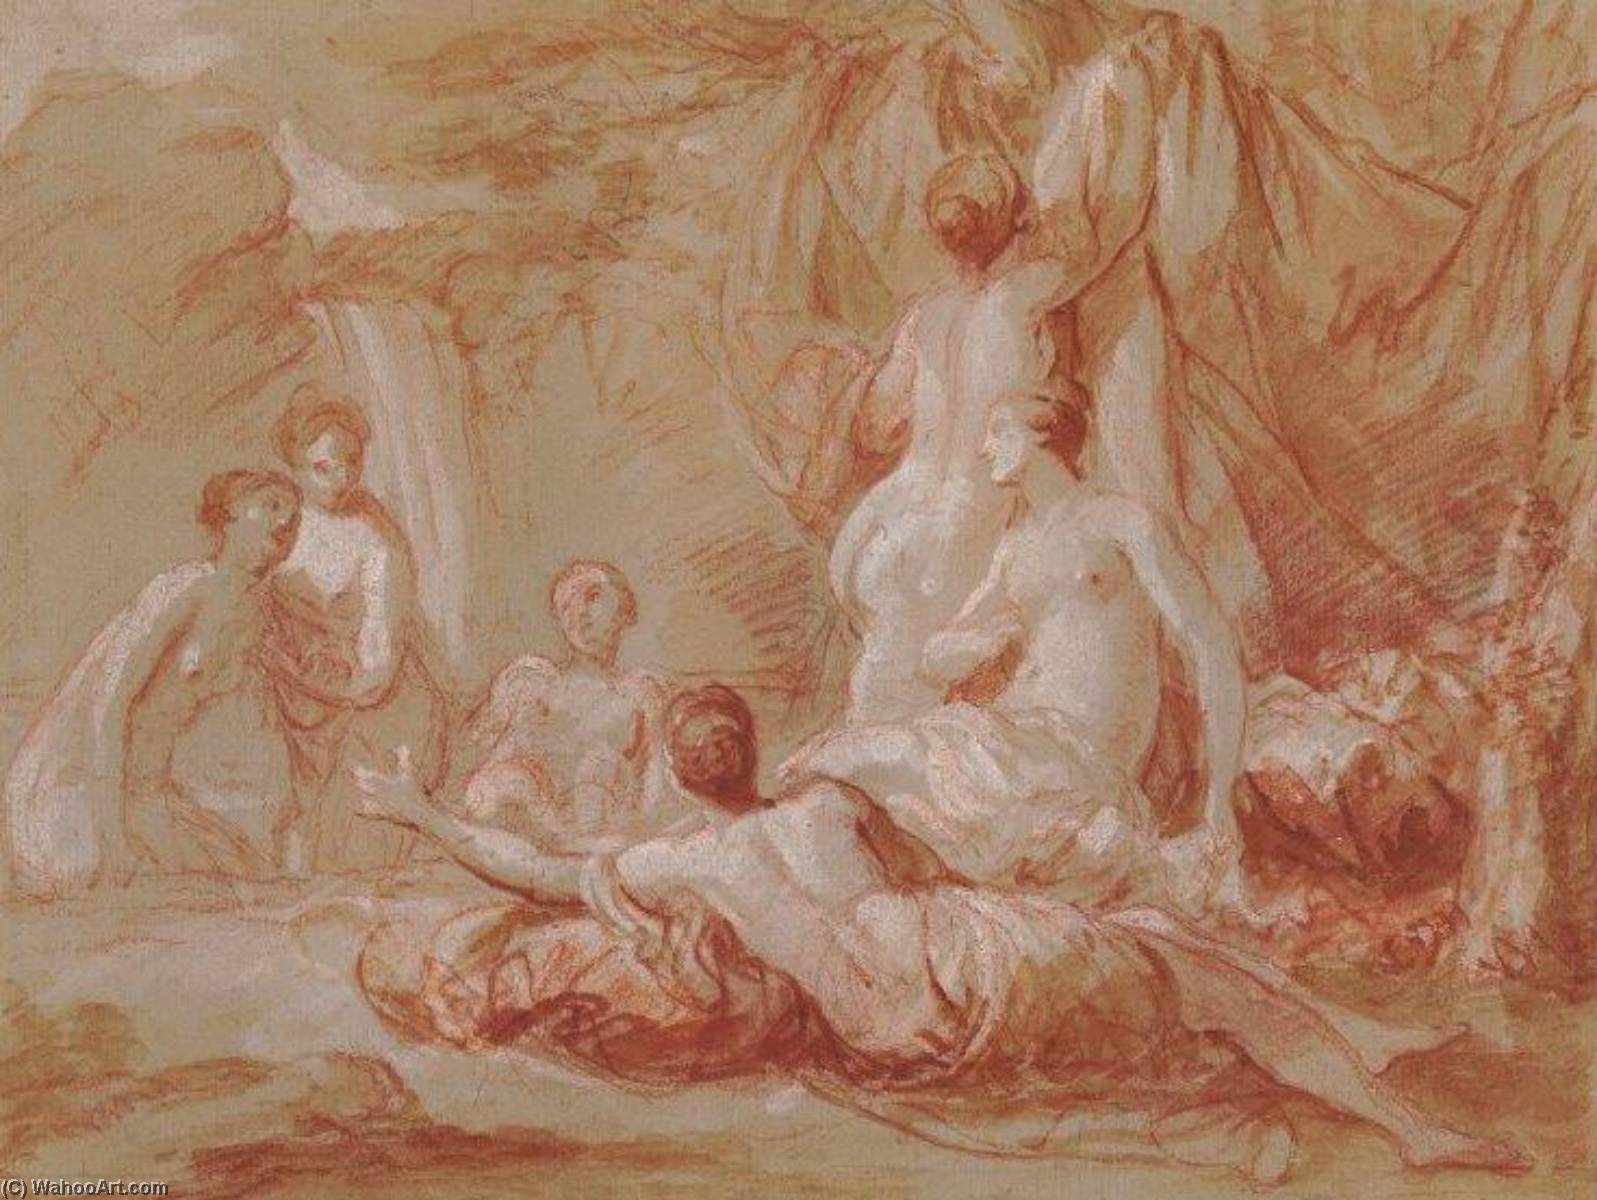 Group of Nymphs, Chalk by Charles-André Van Loo (Carle Van Loo) (1705-1765, France)